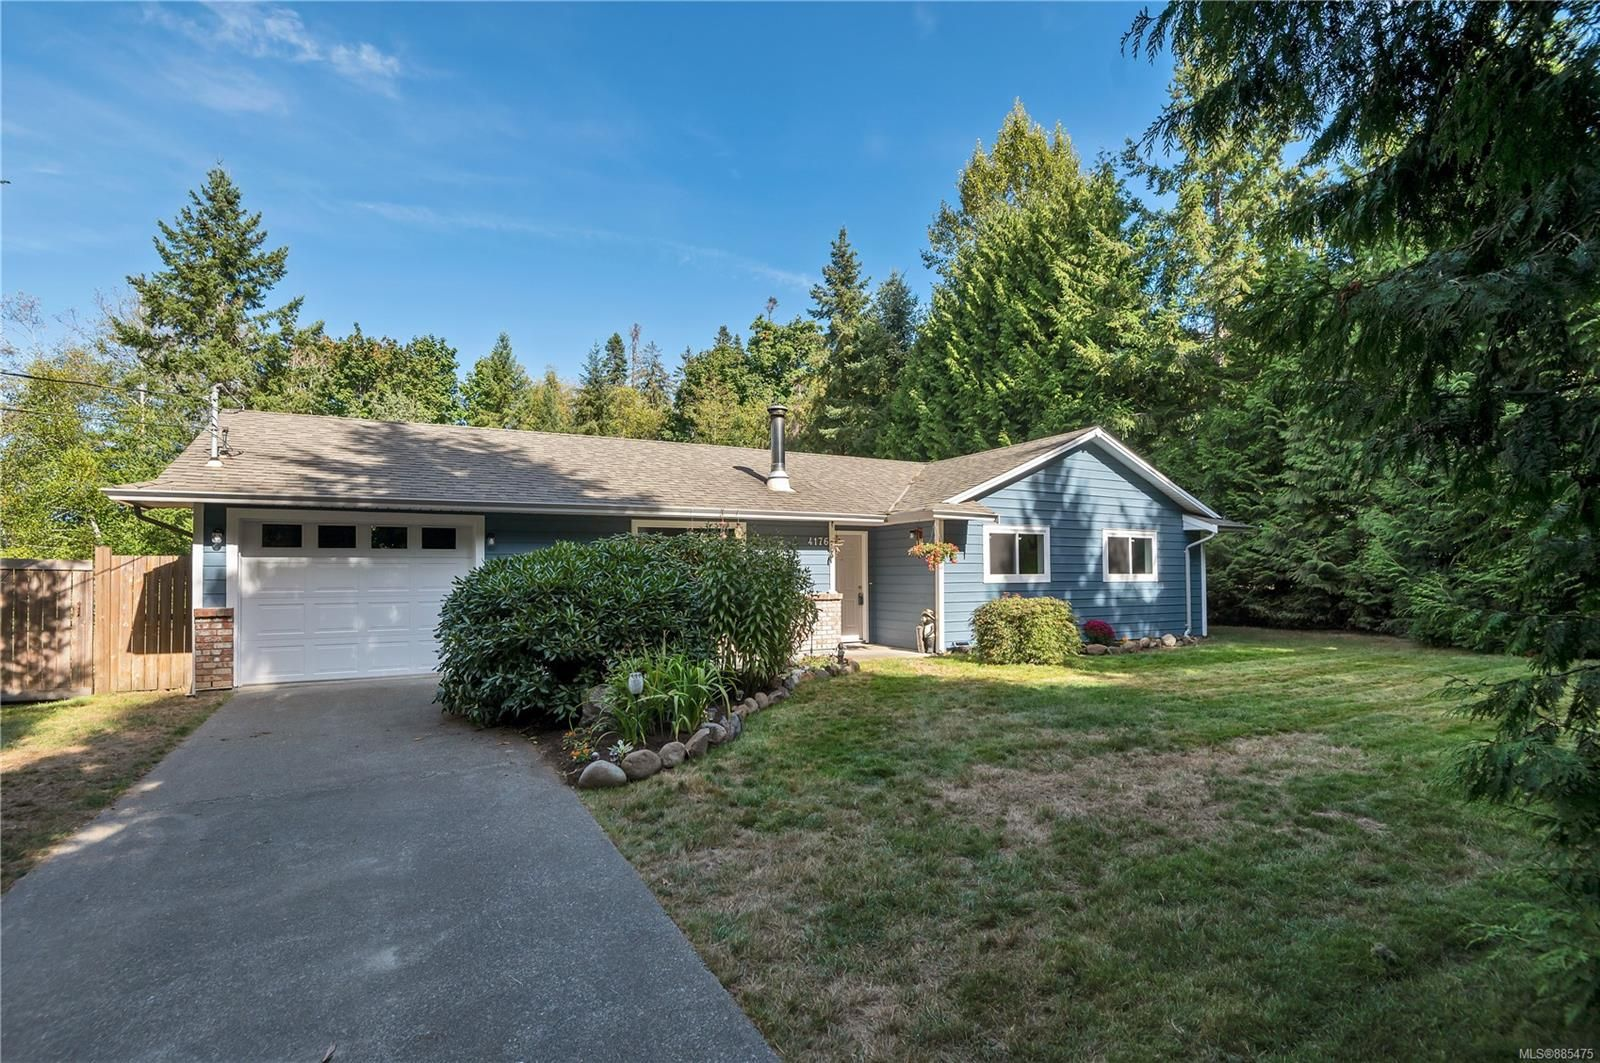 Main Photo: 4176 Briardale Rd in : CV Courtenay South House for sale (Comox Valley)  : MLS®# 885475